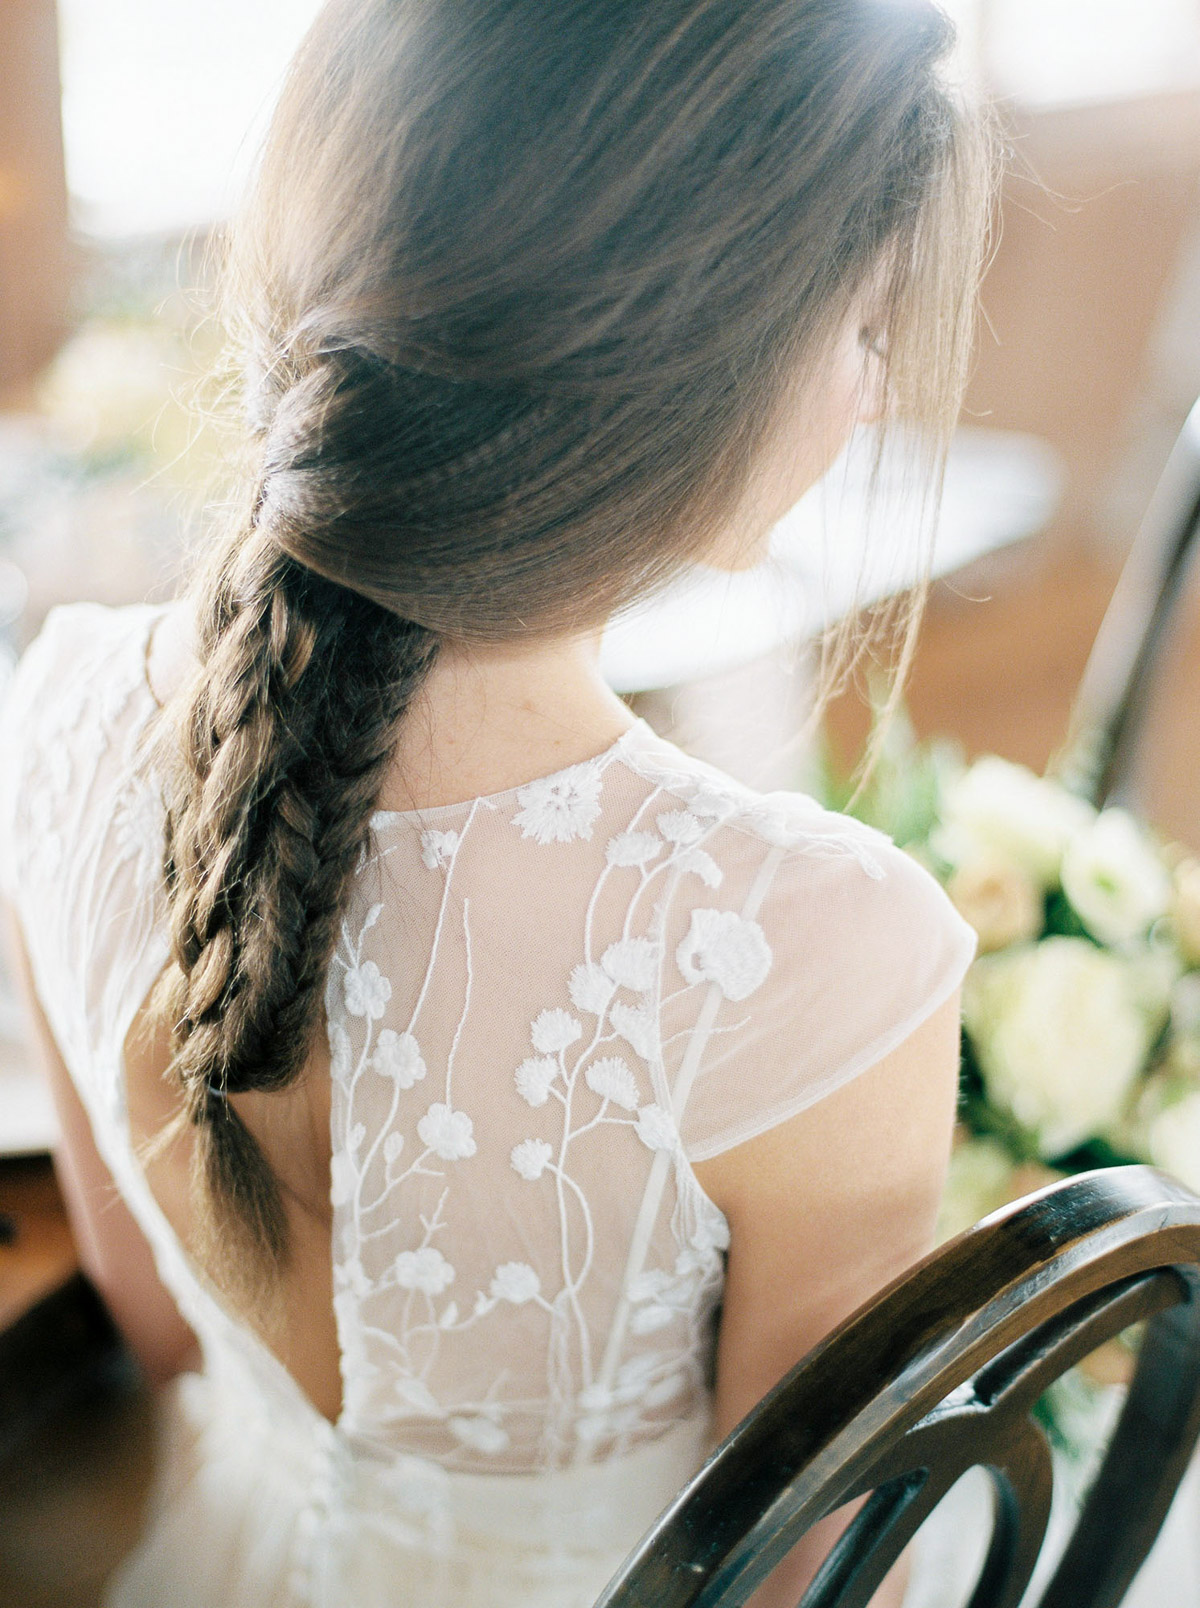 will-reid-photo-vineyard-bride-swish-list-kurtz-orchards-market-niagara-on-the-lake-wedding-editorial-25.jpg